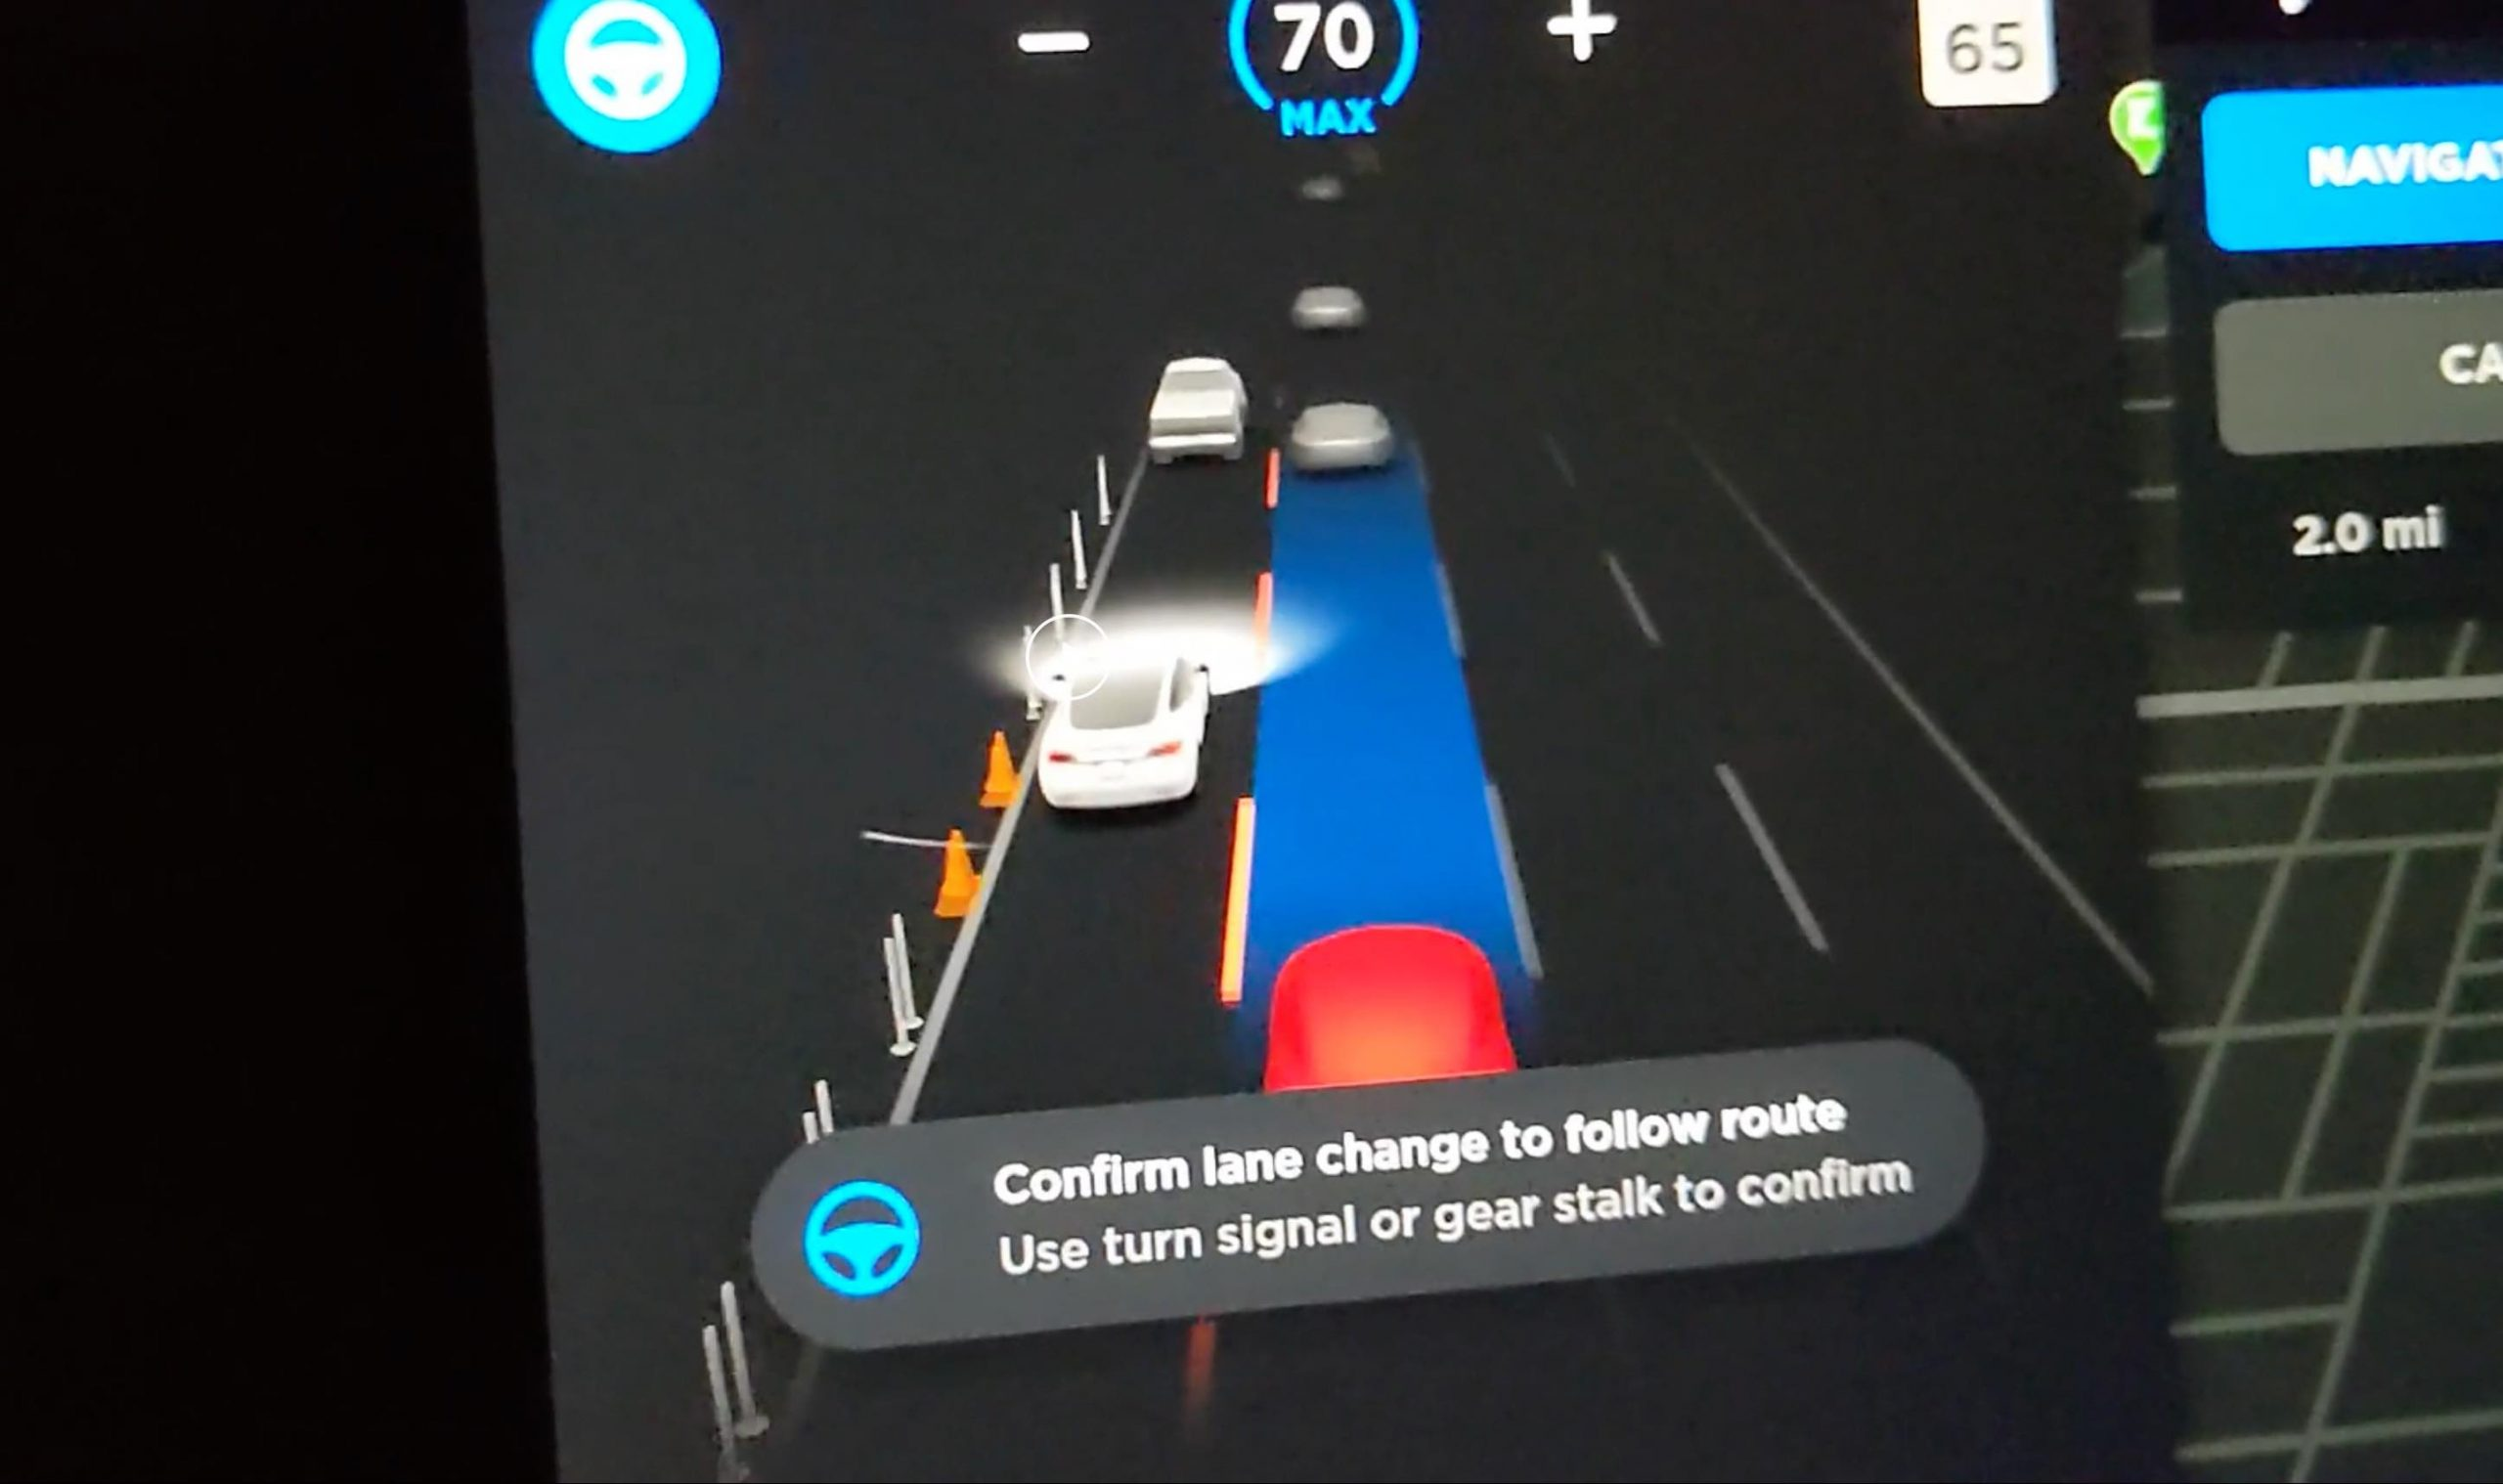 Tesla Autopilot Full Self-Driving detects pylons and traffic cones